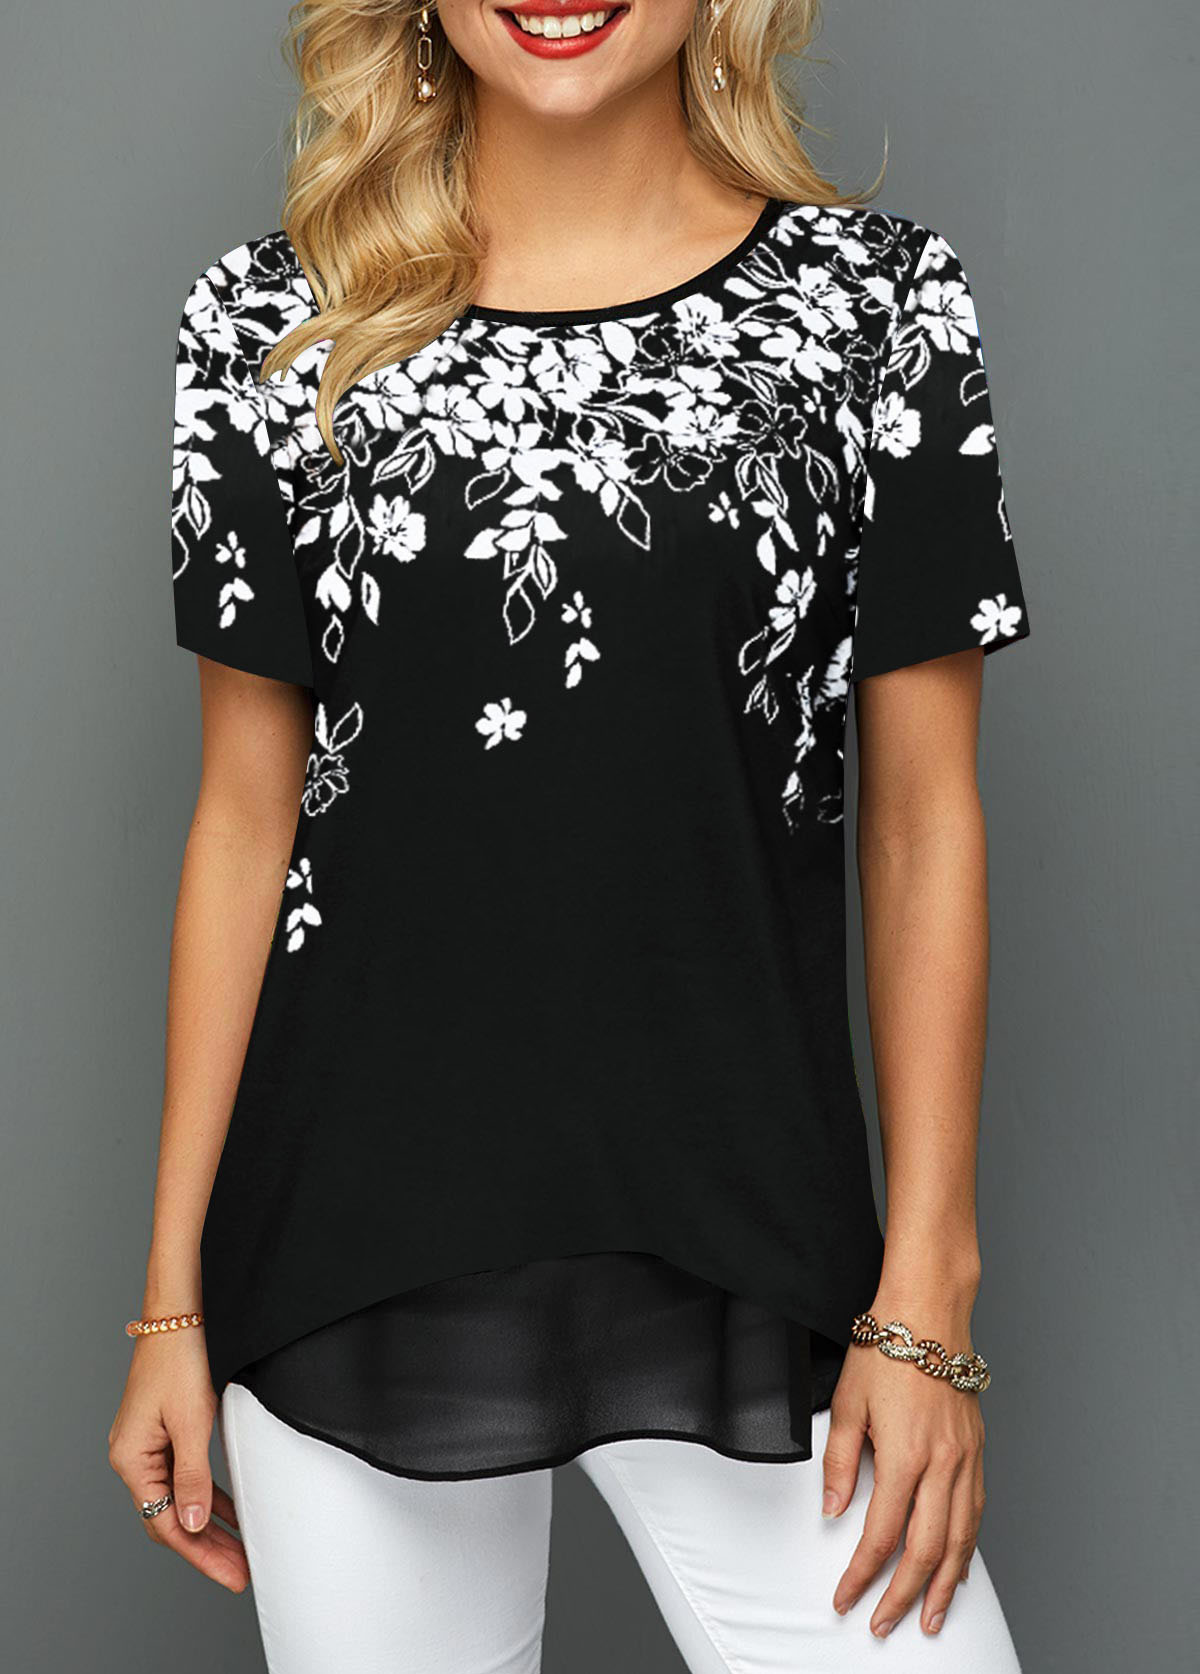 Floral Print Round Neck Short Sleeve T Shirt